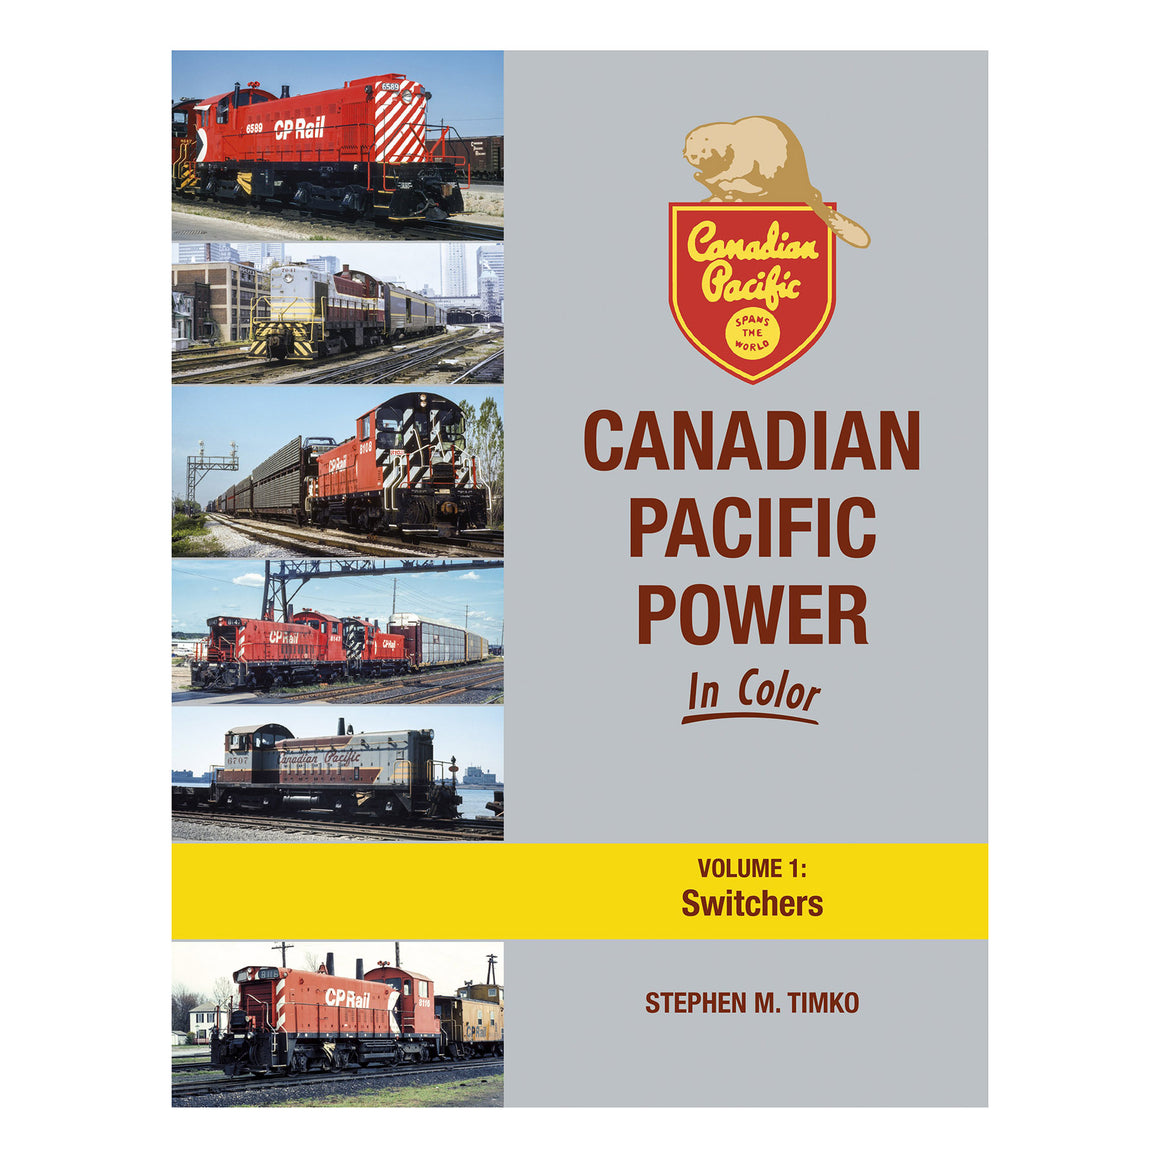 Books: Canadian Pacific Power In Color - Volume 1 'Switchers'